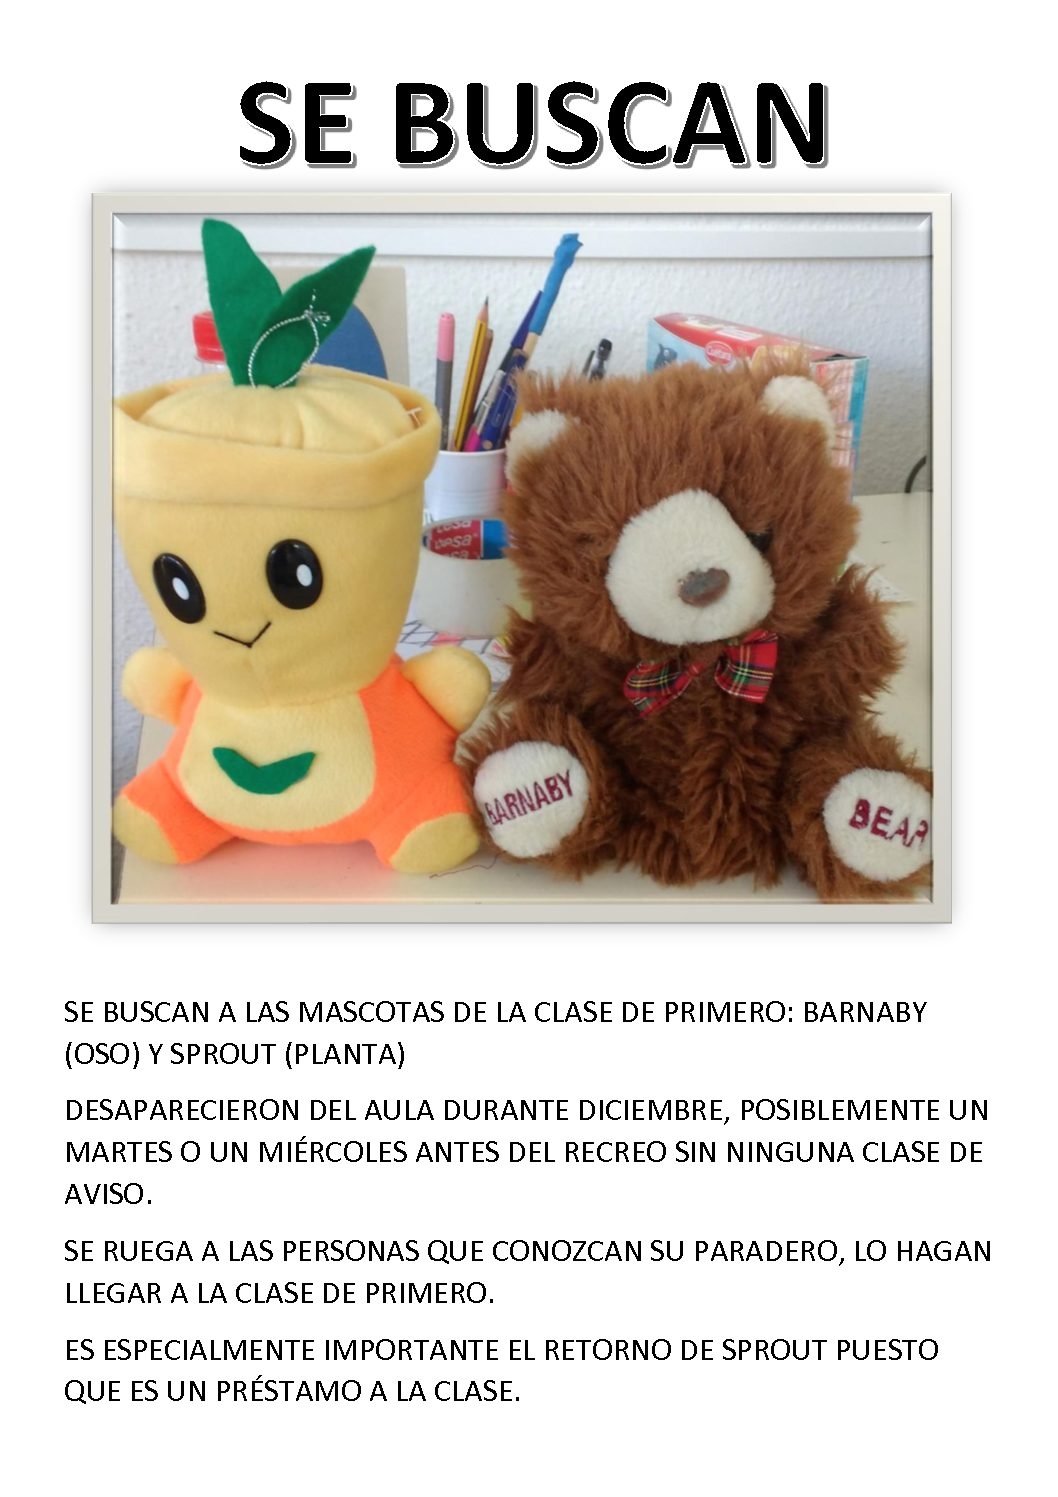 SE BUSCAN: BARNABY Y SPROUT